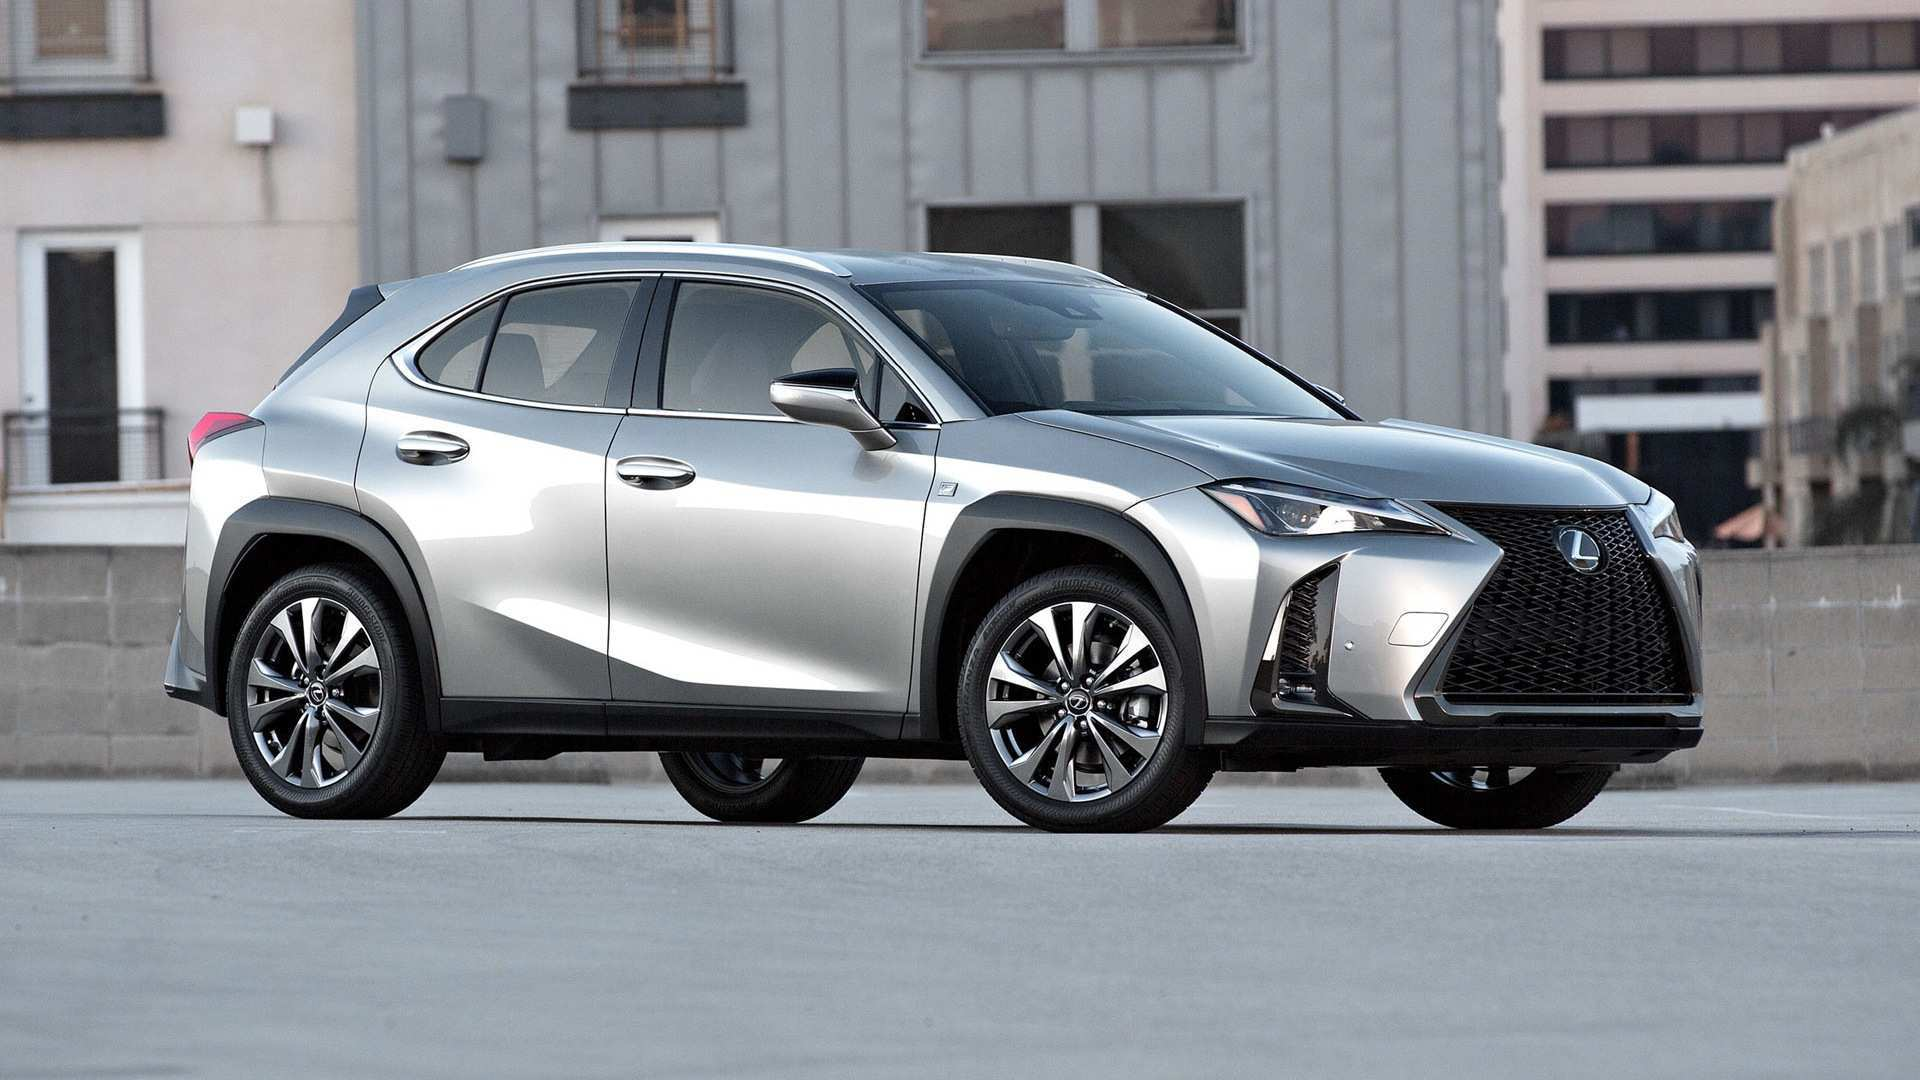 66 All New Lexus Ux 2019 Price Research New